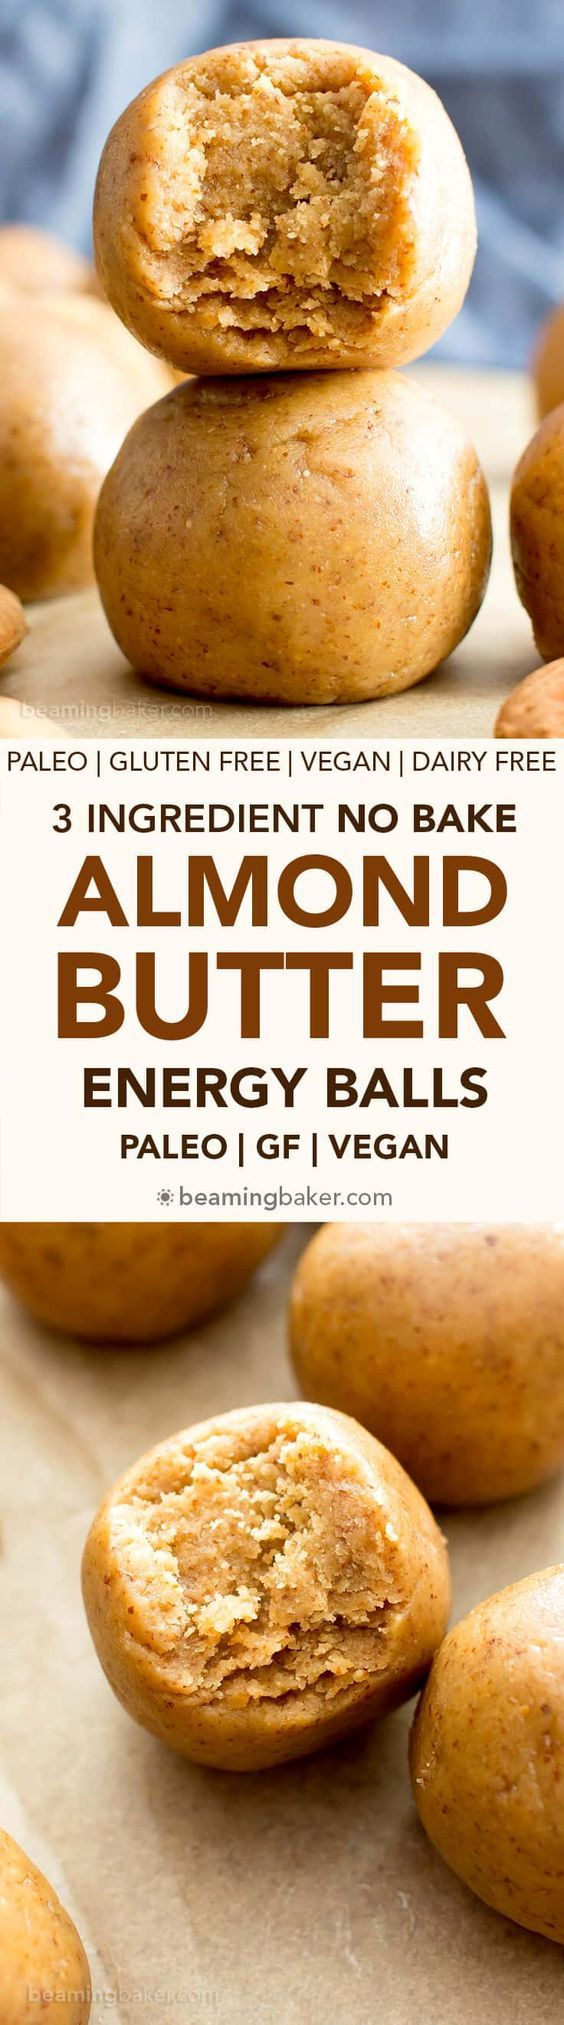 3 Ingredient No Bake Almond Butter Paleo Energy Balls (V, GF, DF): an easy recipe for perfectly sweet, seriously satisfying no bake paleo energy bites. #Vegan #Paleo #GlutenFree #DairyFree #Healthy #Snacks | Recipe on BeamingBaker.com